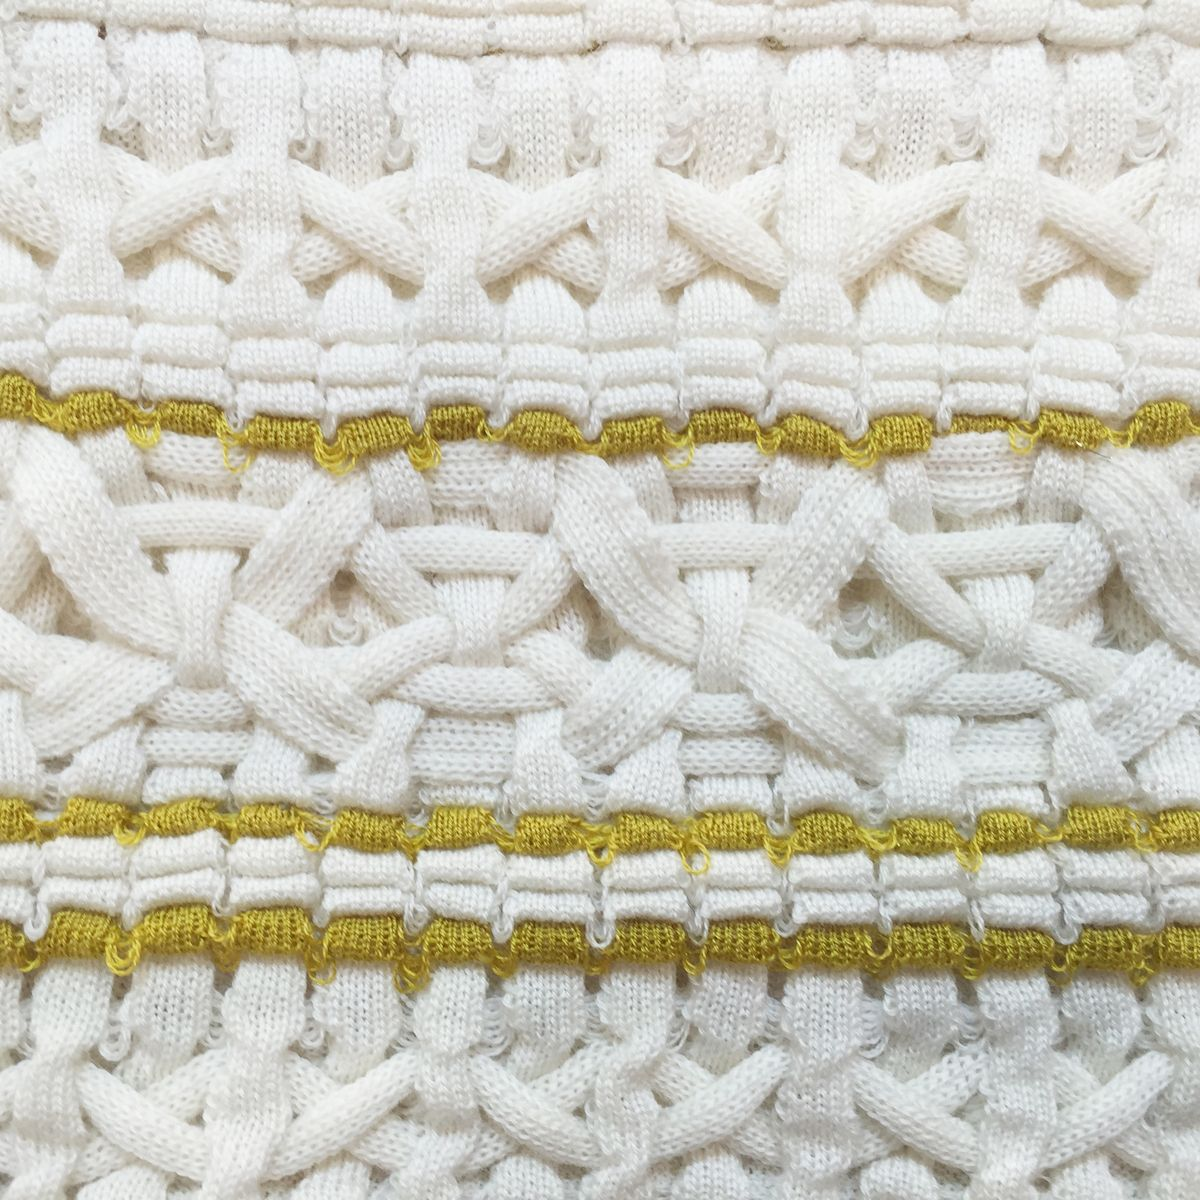 2015 #intertextile Expo in Shanghai #knitwear #pattern #textile #knitpattern…